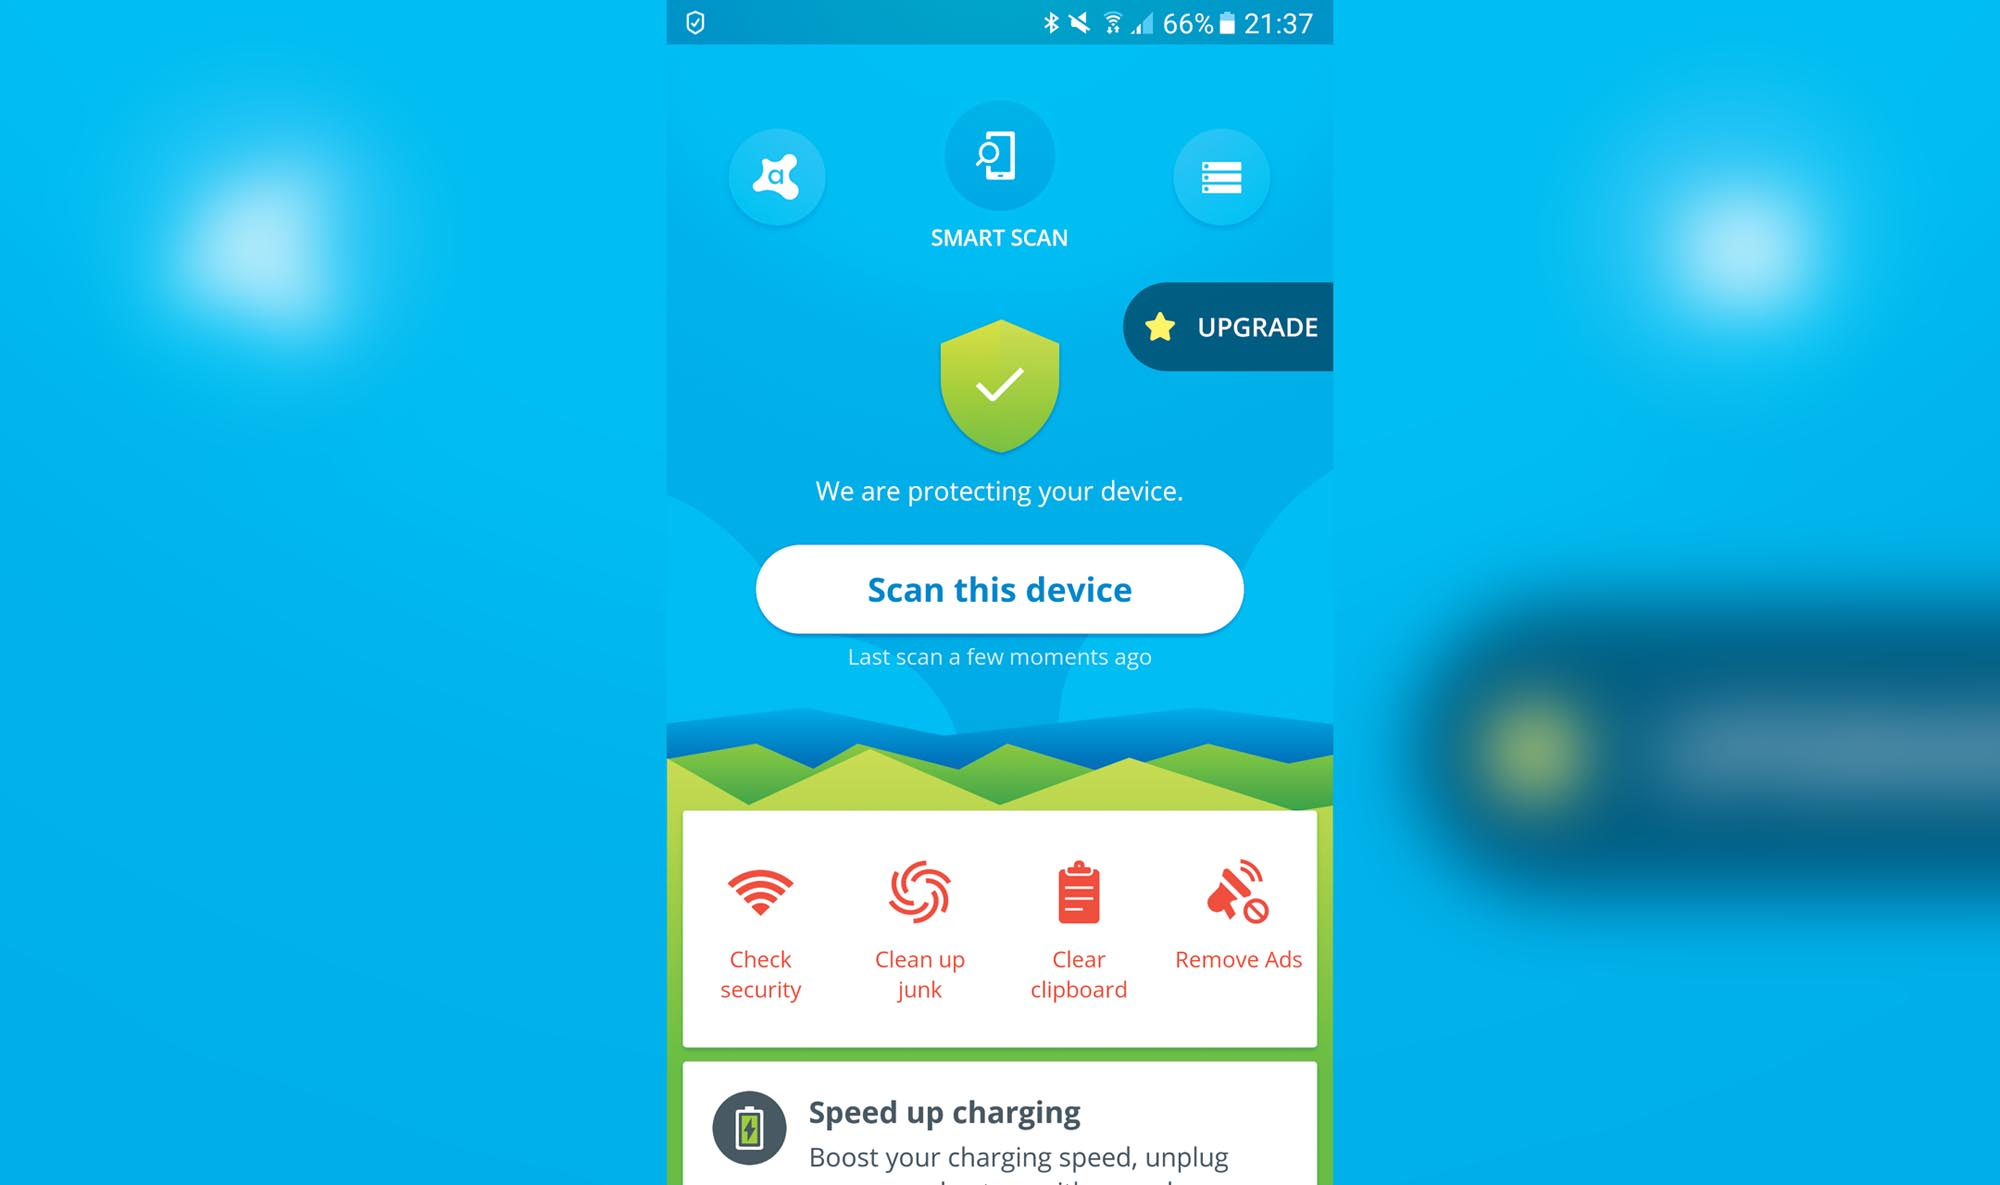 Perfectly remove avast free antivirus 2015 how to do it - Avast S Antivirus Tool Is Our Favourite Free Option For Windows And Its Android App Is Just As Impressive In Av Test S Latest Tests It Blocked All Known